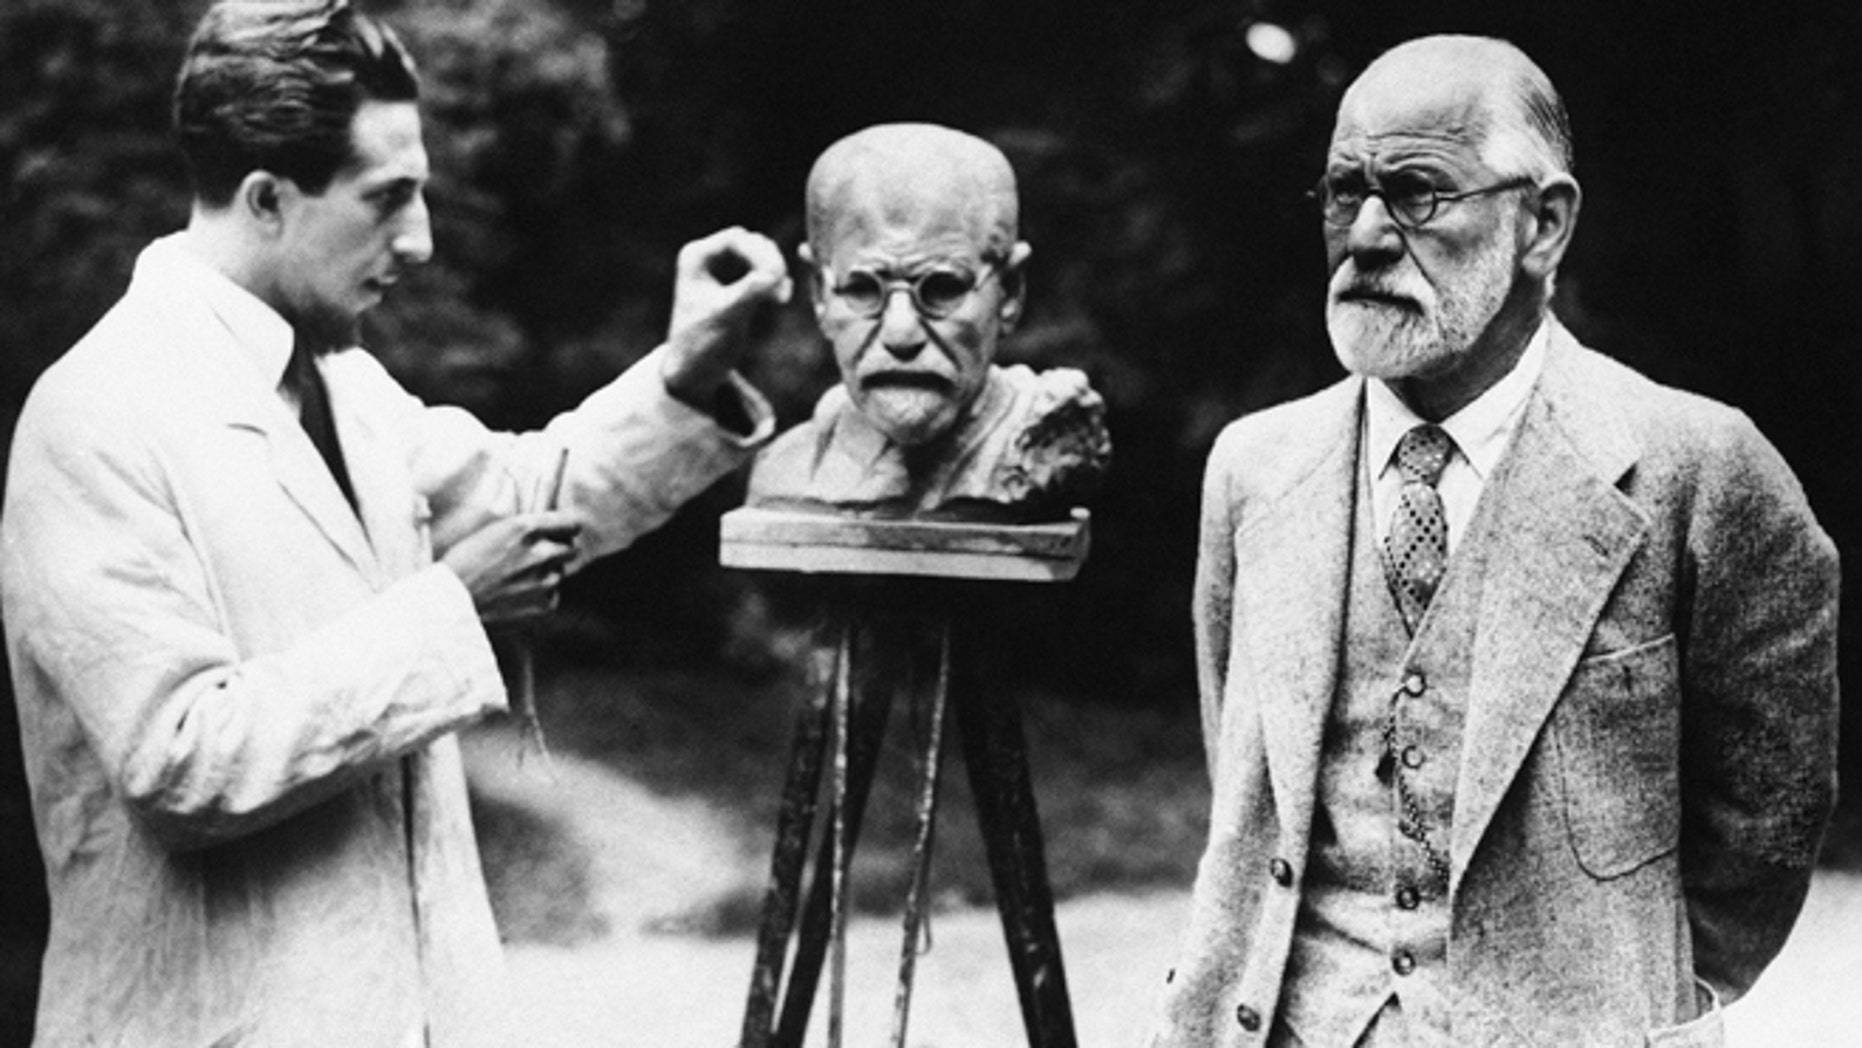 This is a 1931 file photo of Sigmund Freud, father of psychoanalysis, as he poses for sculptor Oscar Nemon in Vienna.